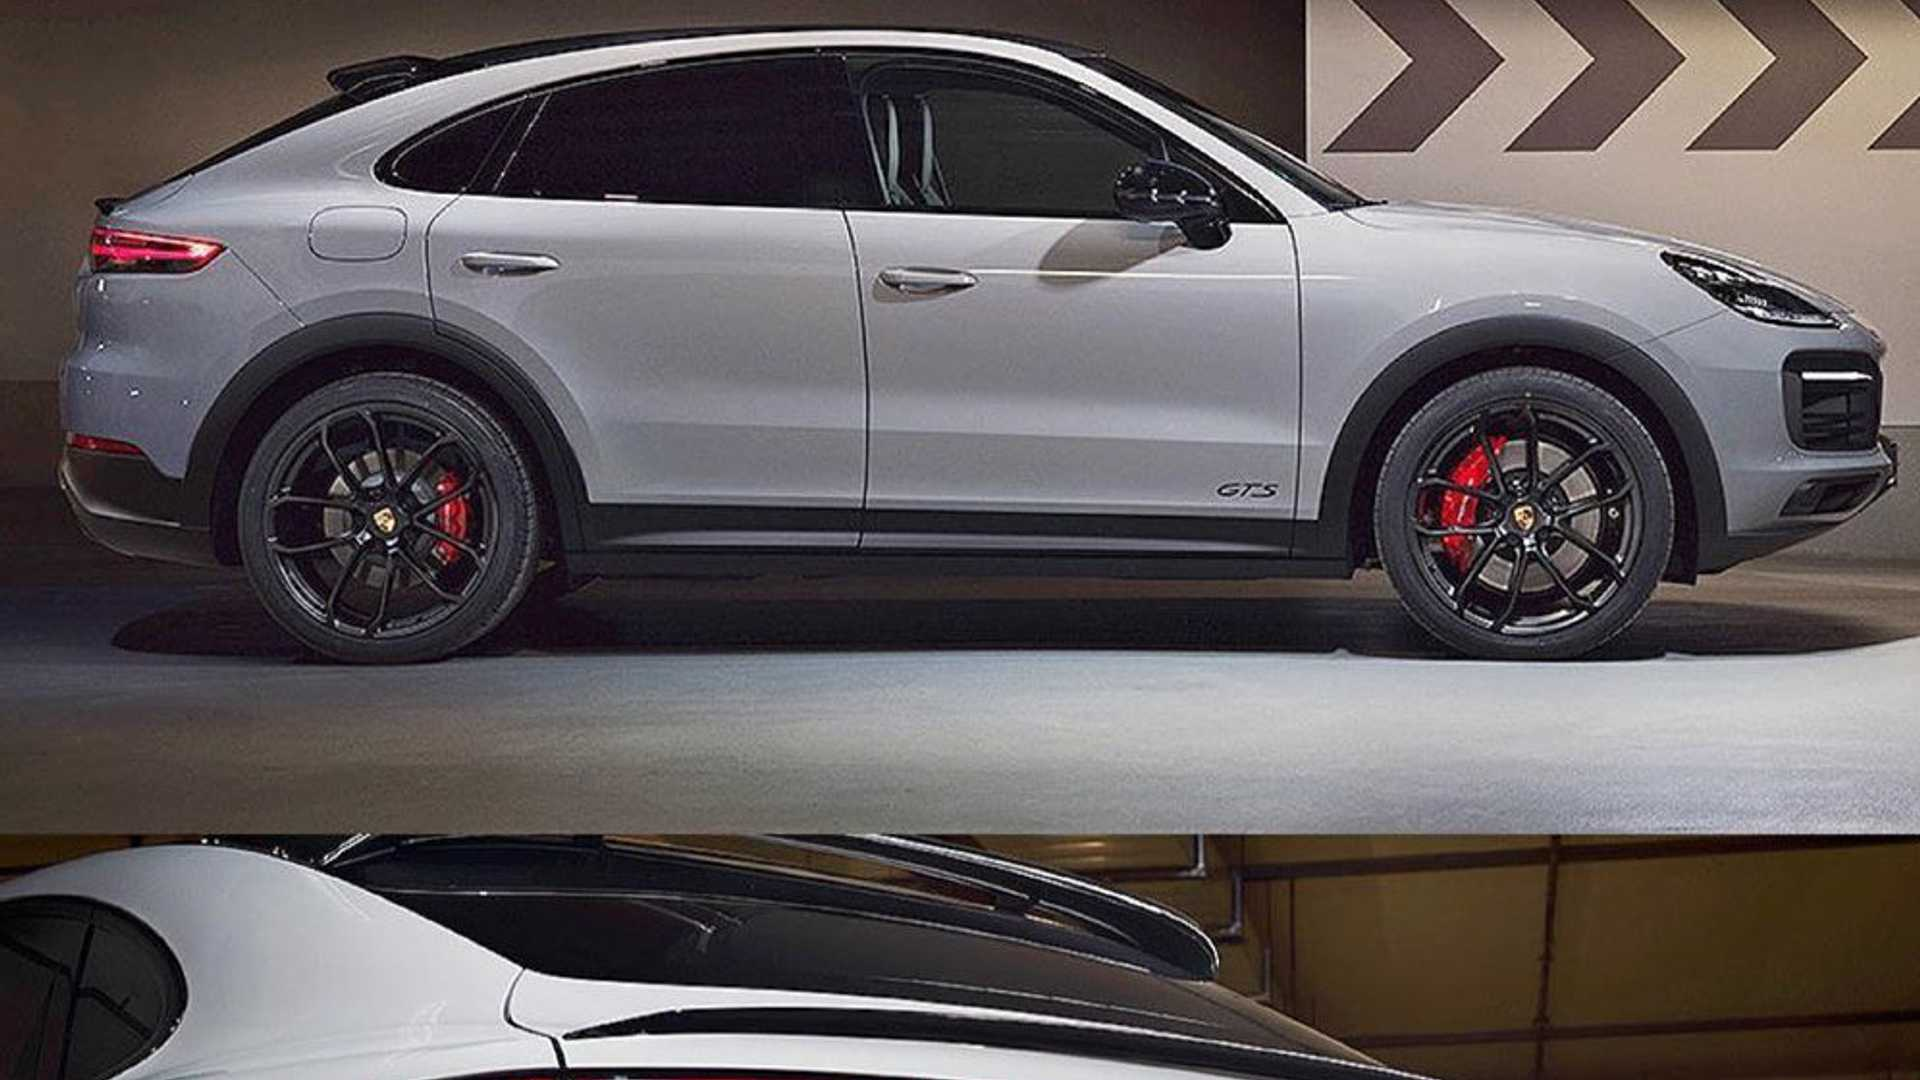 2021-porsc​he-cayenne​-coupe-gts​-leaked-im​ages